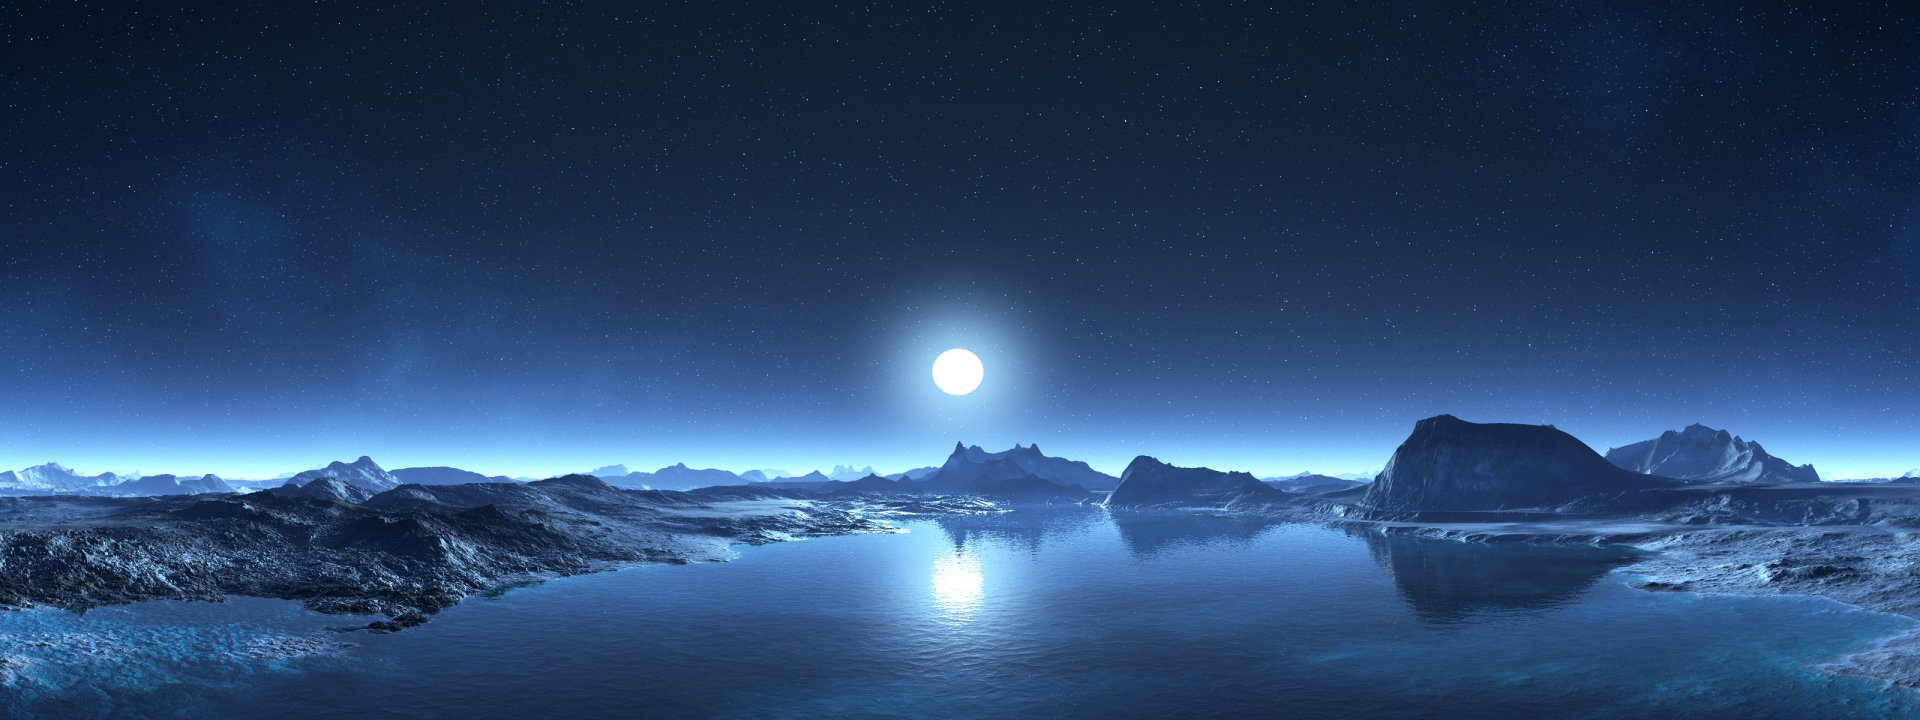 Multi Monitor - Space  Mountain Lake Shiver Moonrise Blue Cold Wallpaper